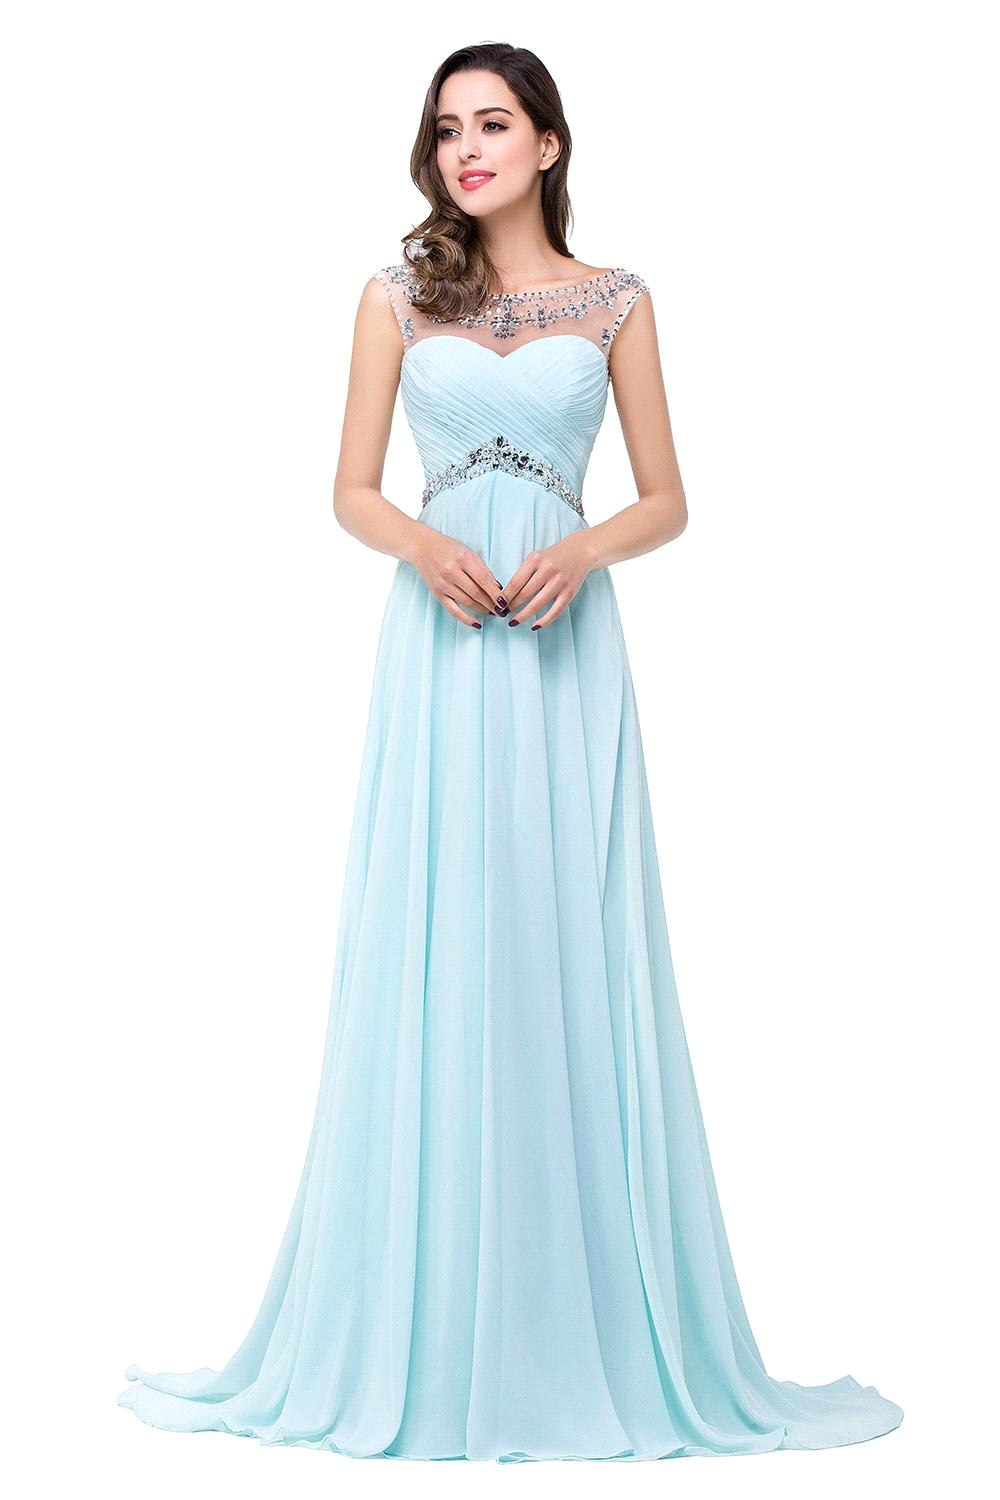 3ec46d87a5a Cheap Price Under 50 100% Real Samples In Stock 2015 Cap Sleeve Beaded  Chiffon Prom Dress Floor Length Long Evening Party Dress-in Prom Dresses  from ...